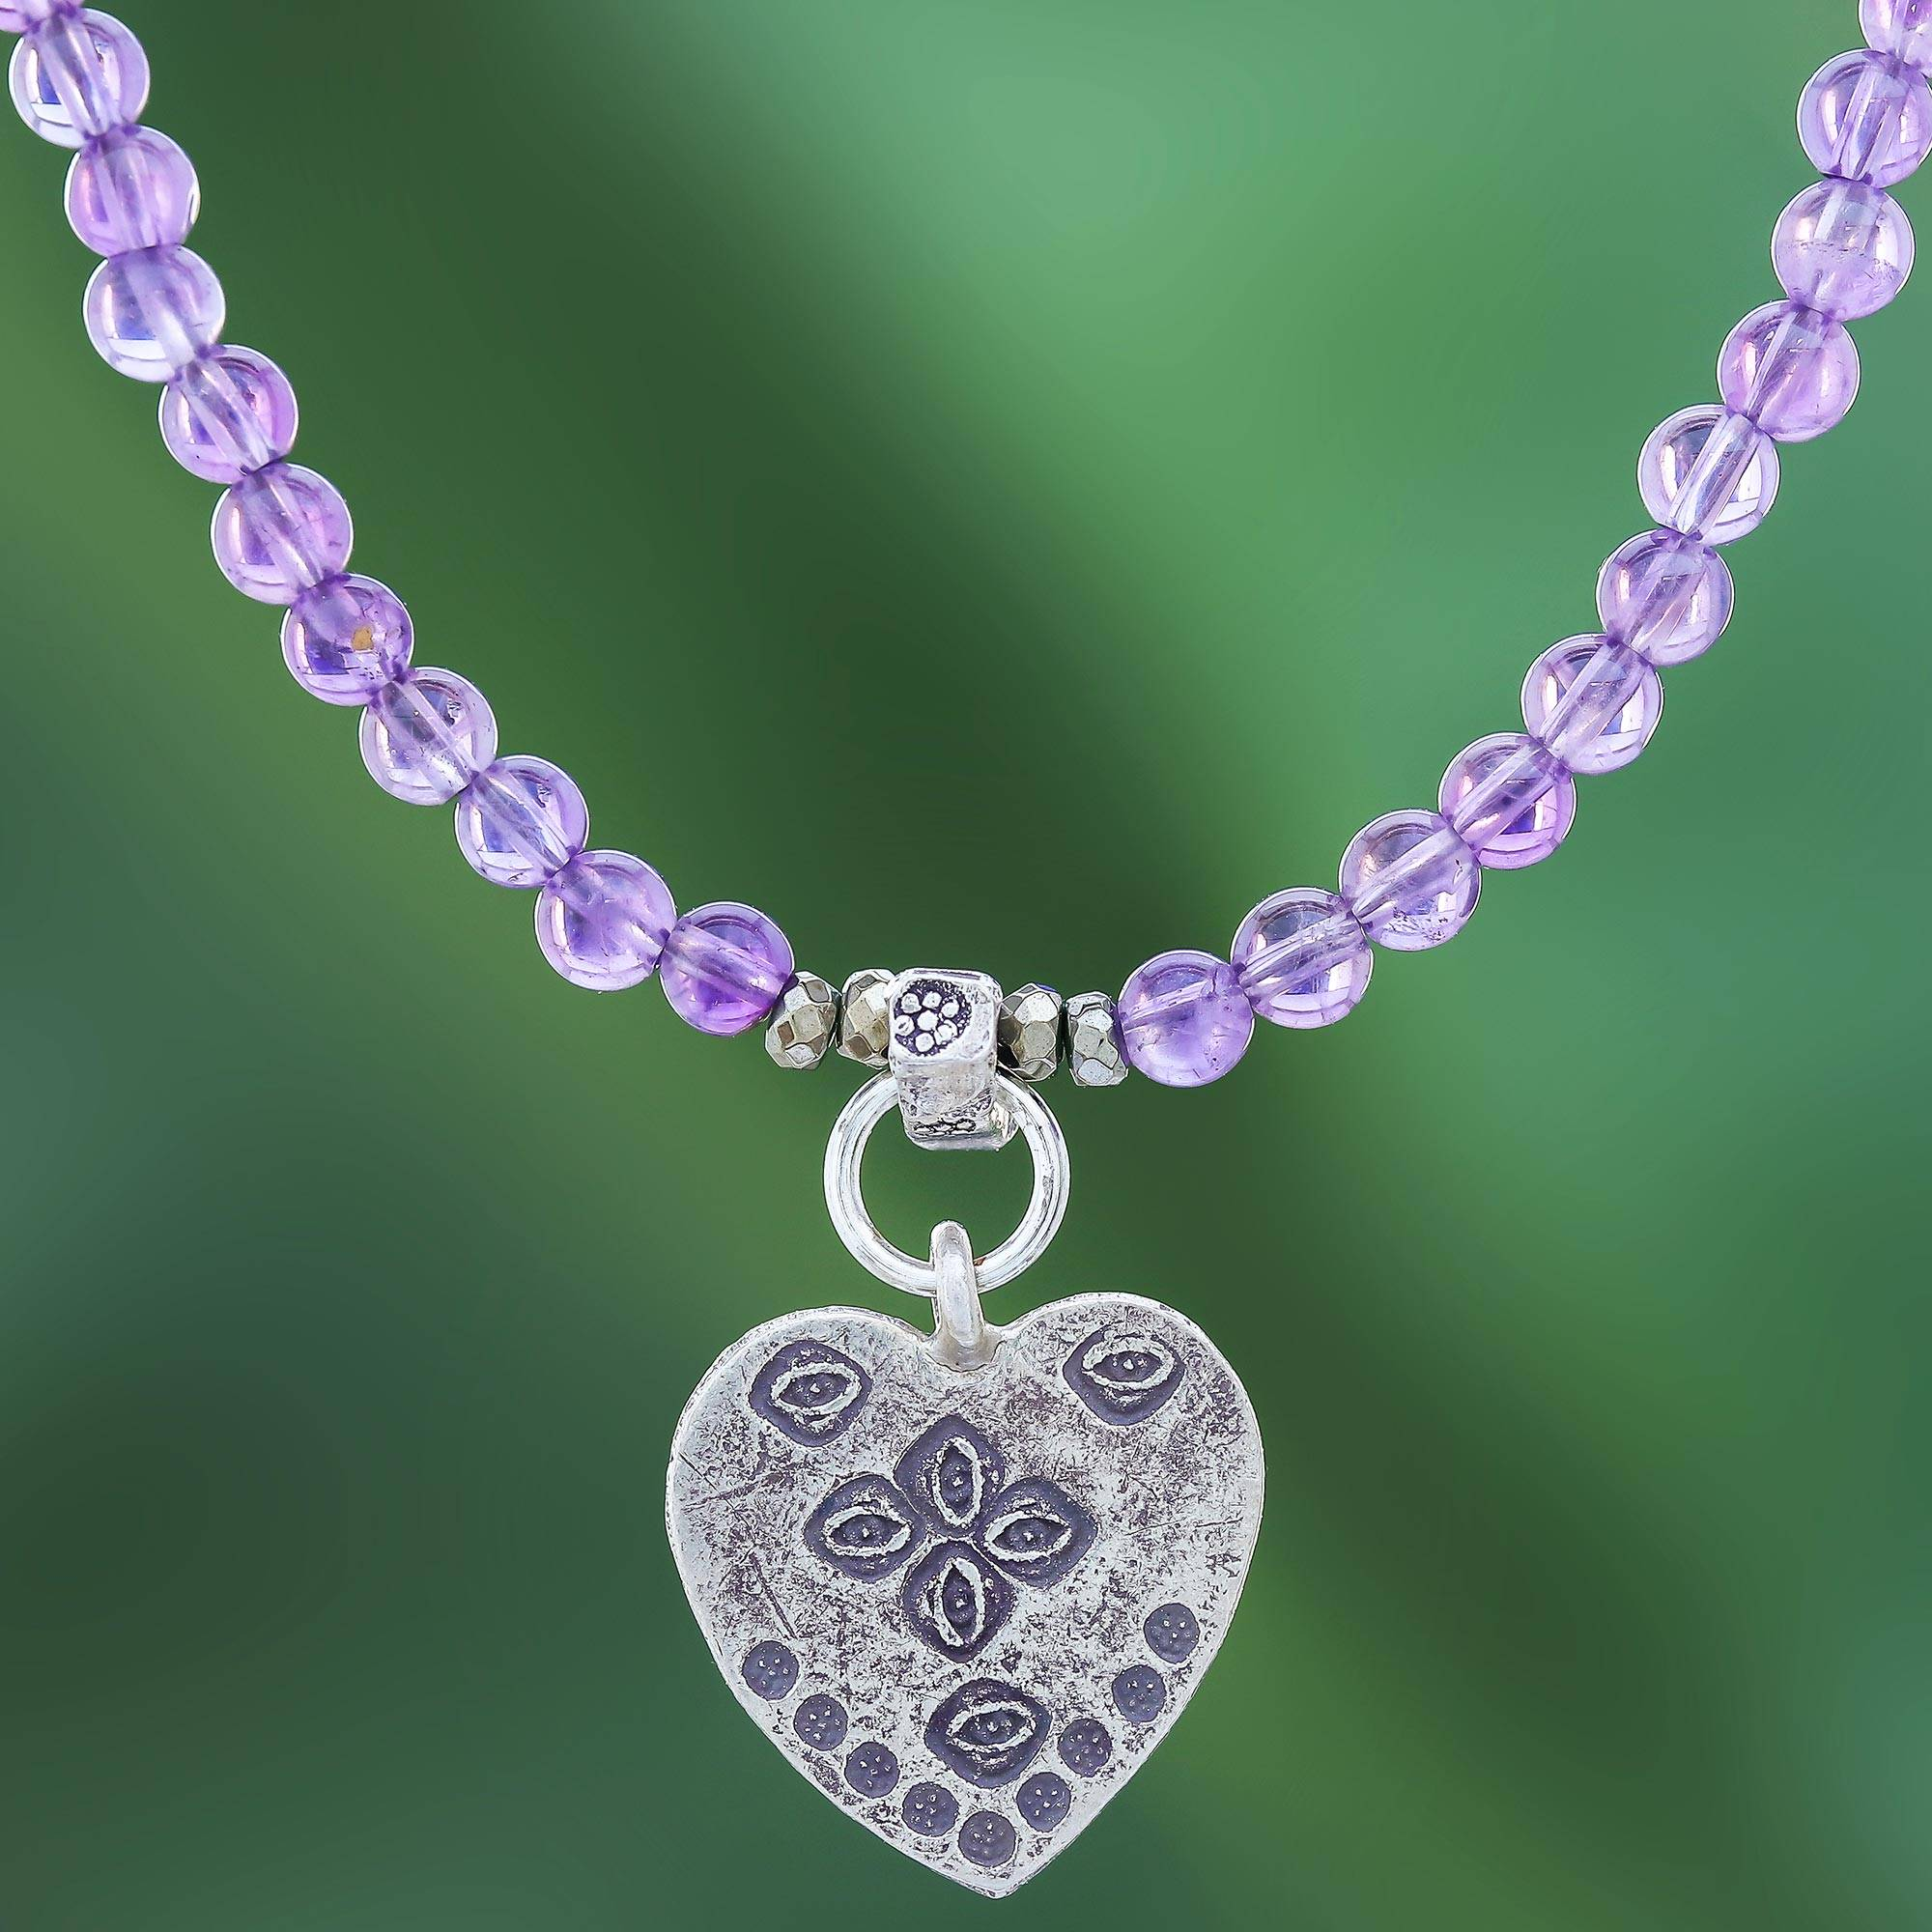 """NOVICA – 950 Silver Heart Pendant Necklace with Amethyst Beads, """"Emboldened Heart"""""""